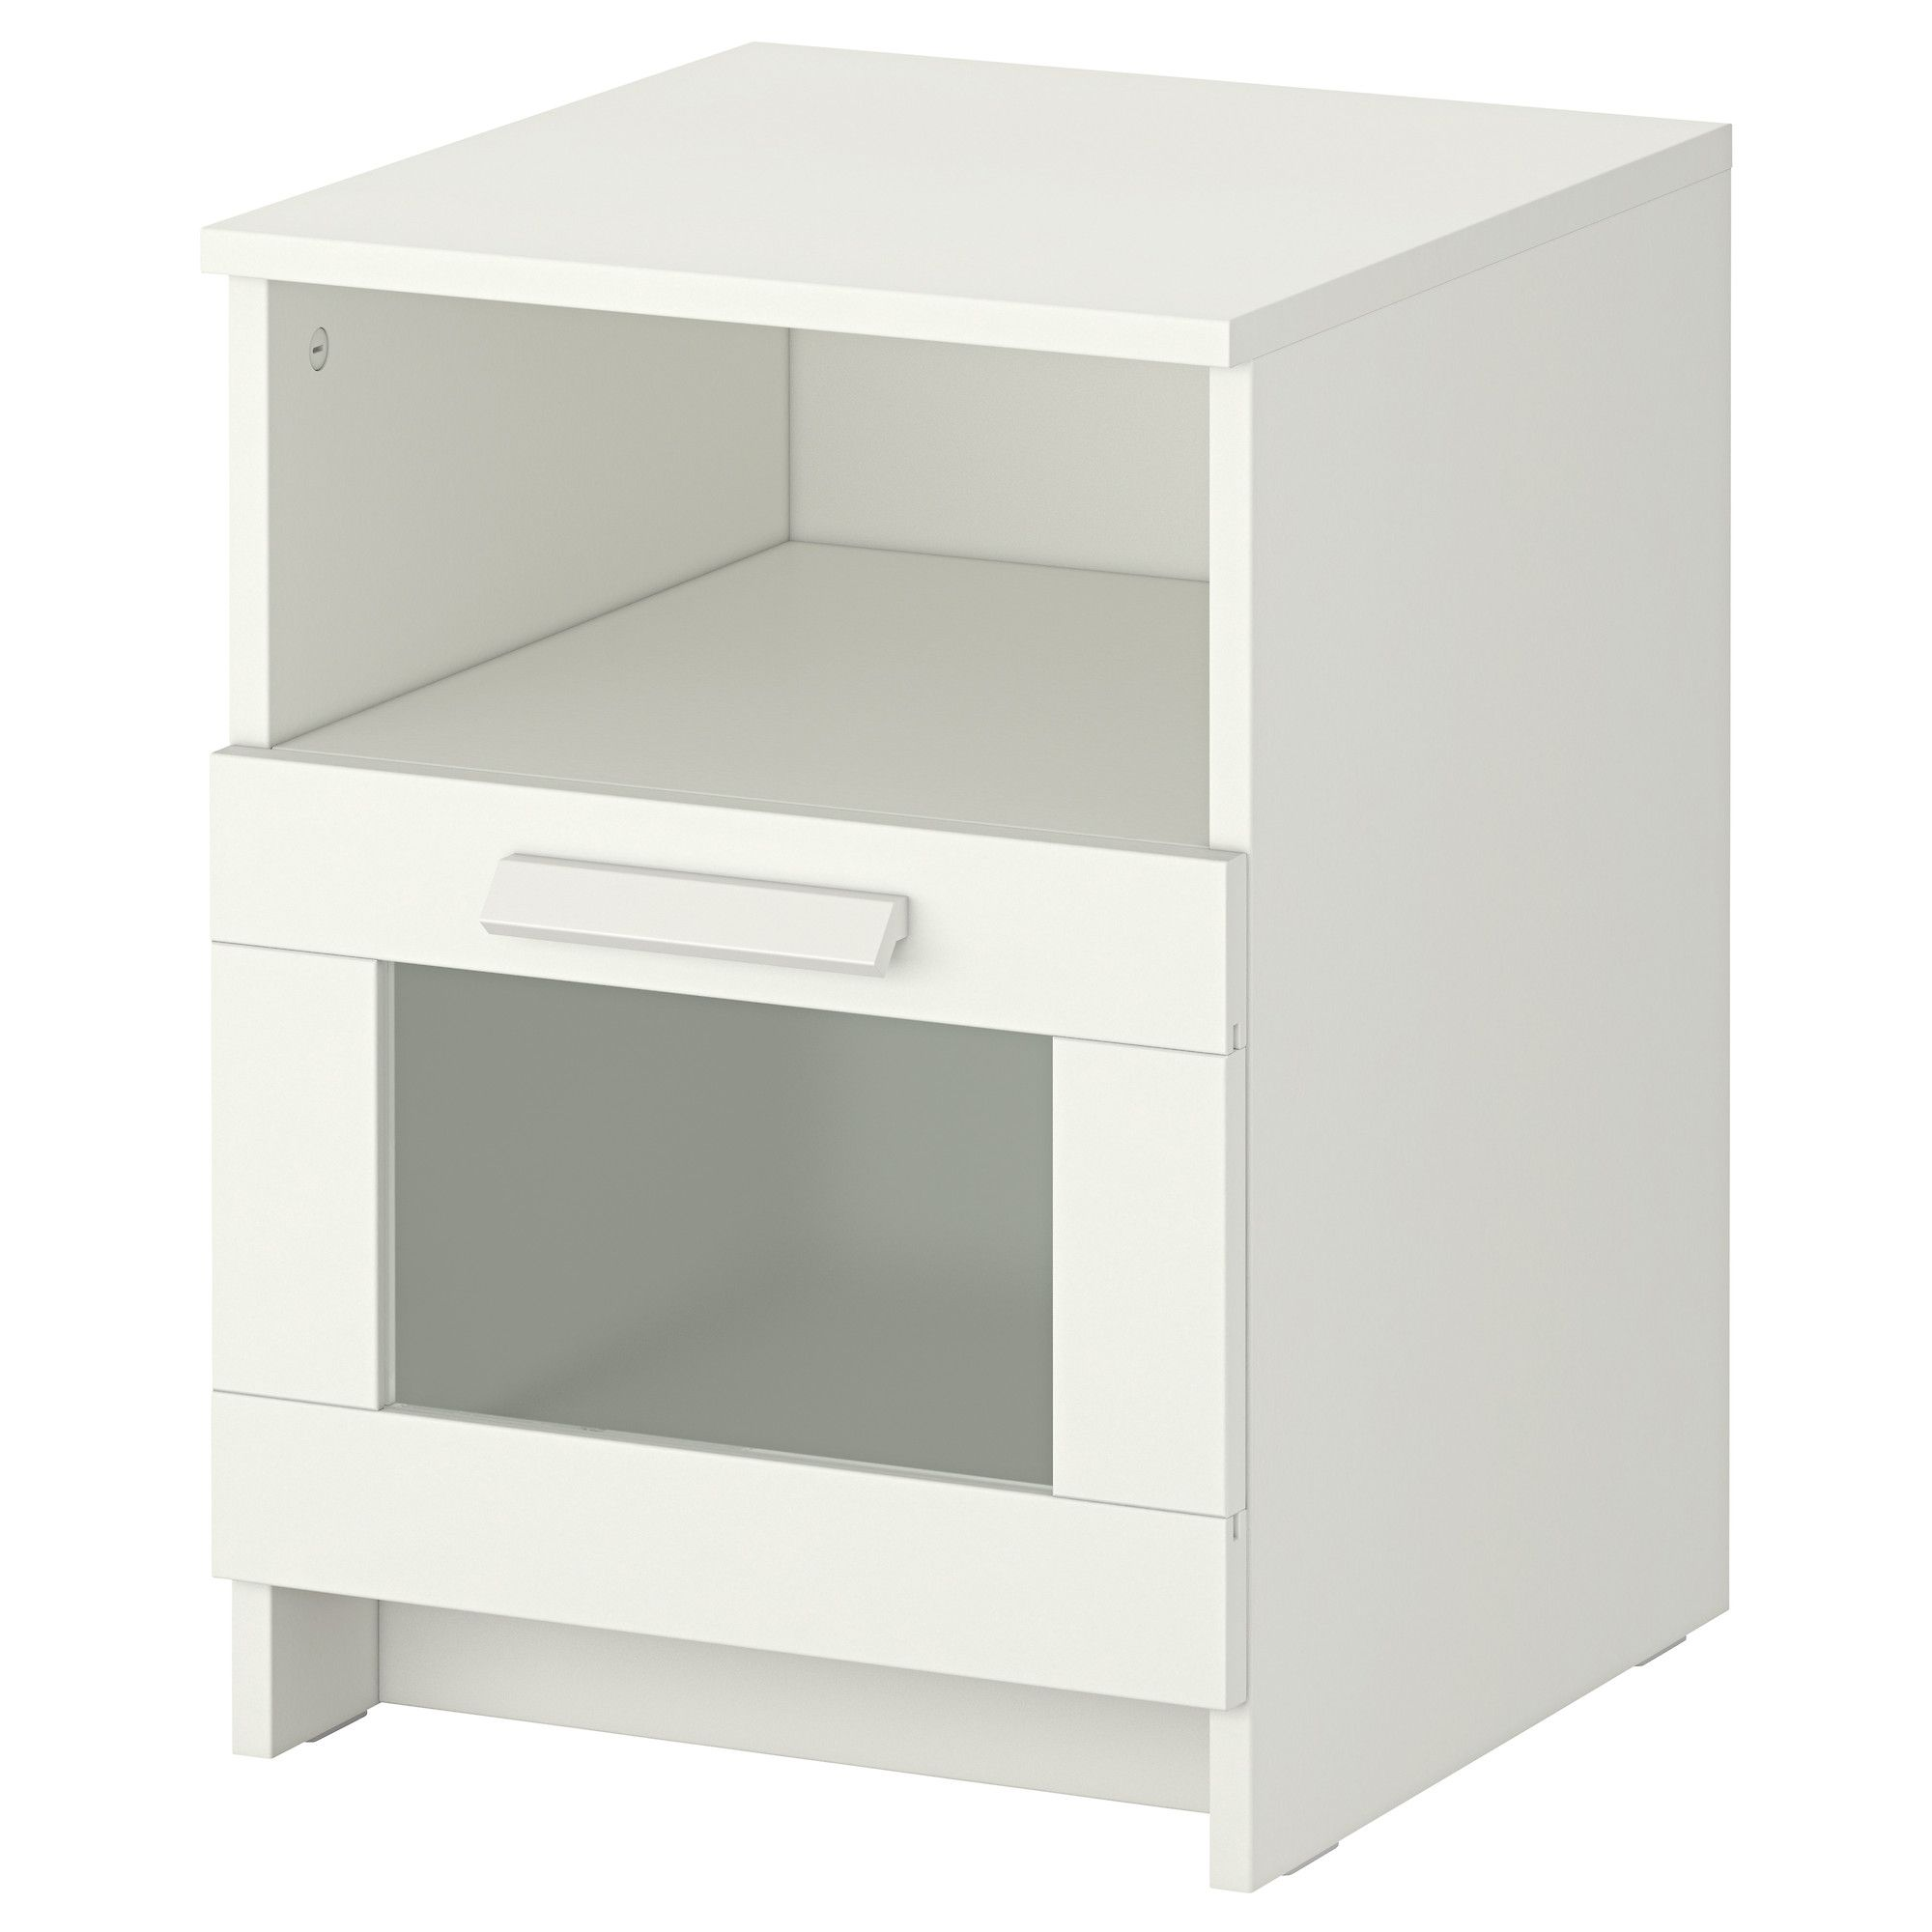 The Most Awesome Small White Side Table